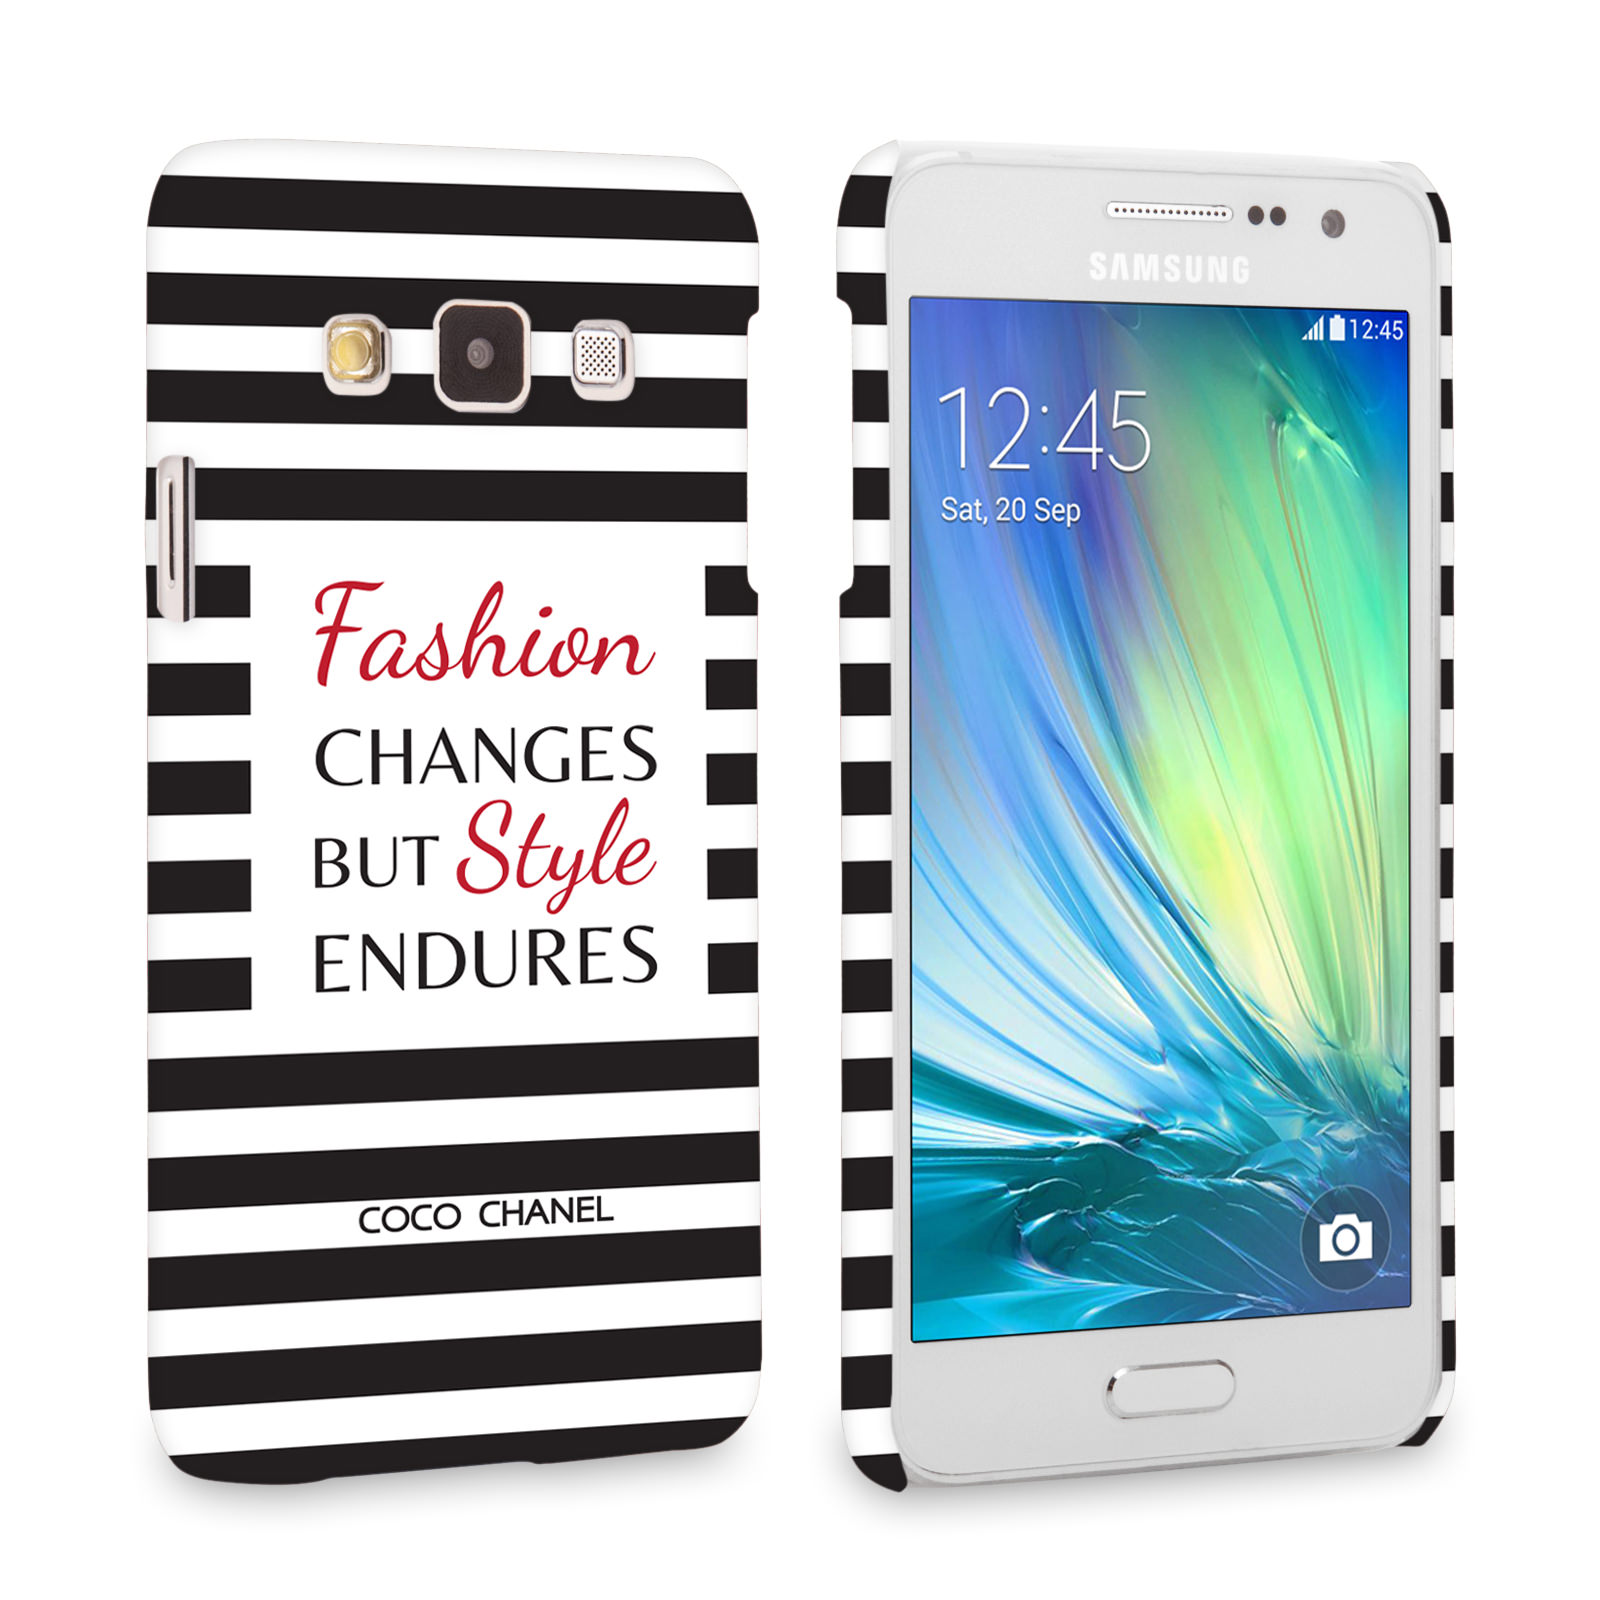 Caseflex Samsung Galaxy A3 Chanel 'Fashion Changes' Quote Case – Black and White